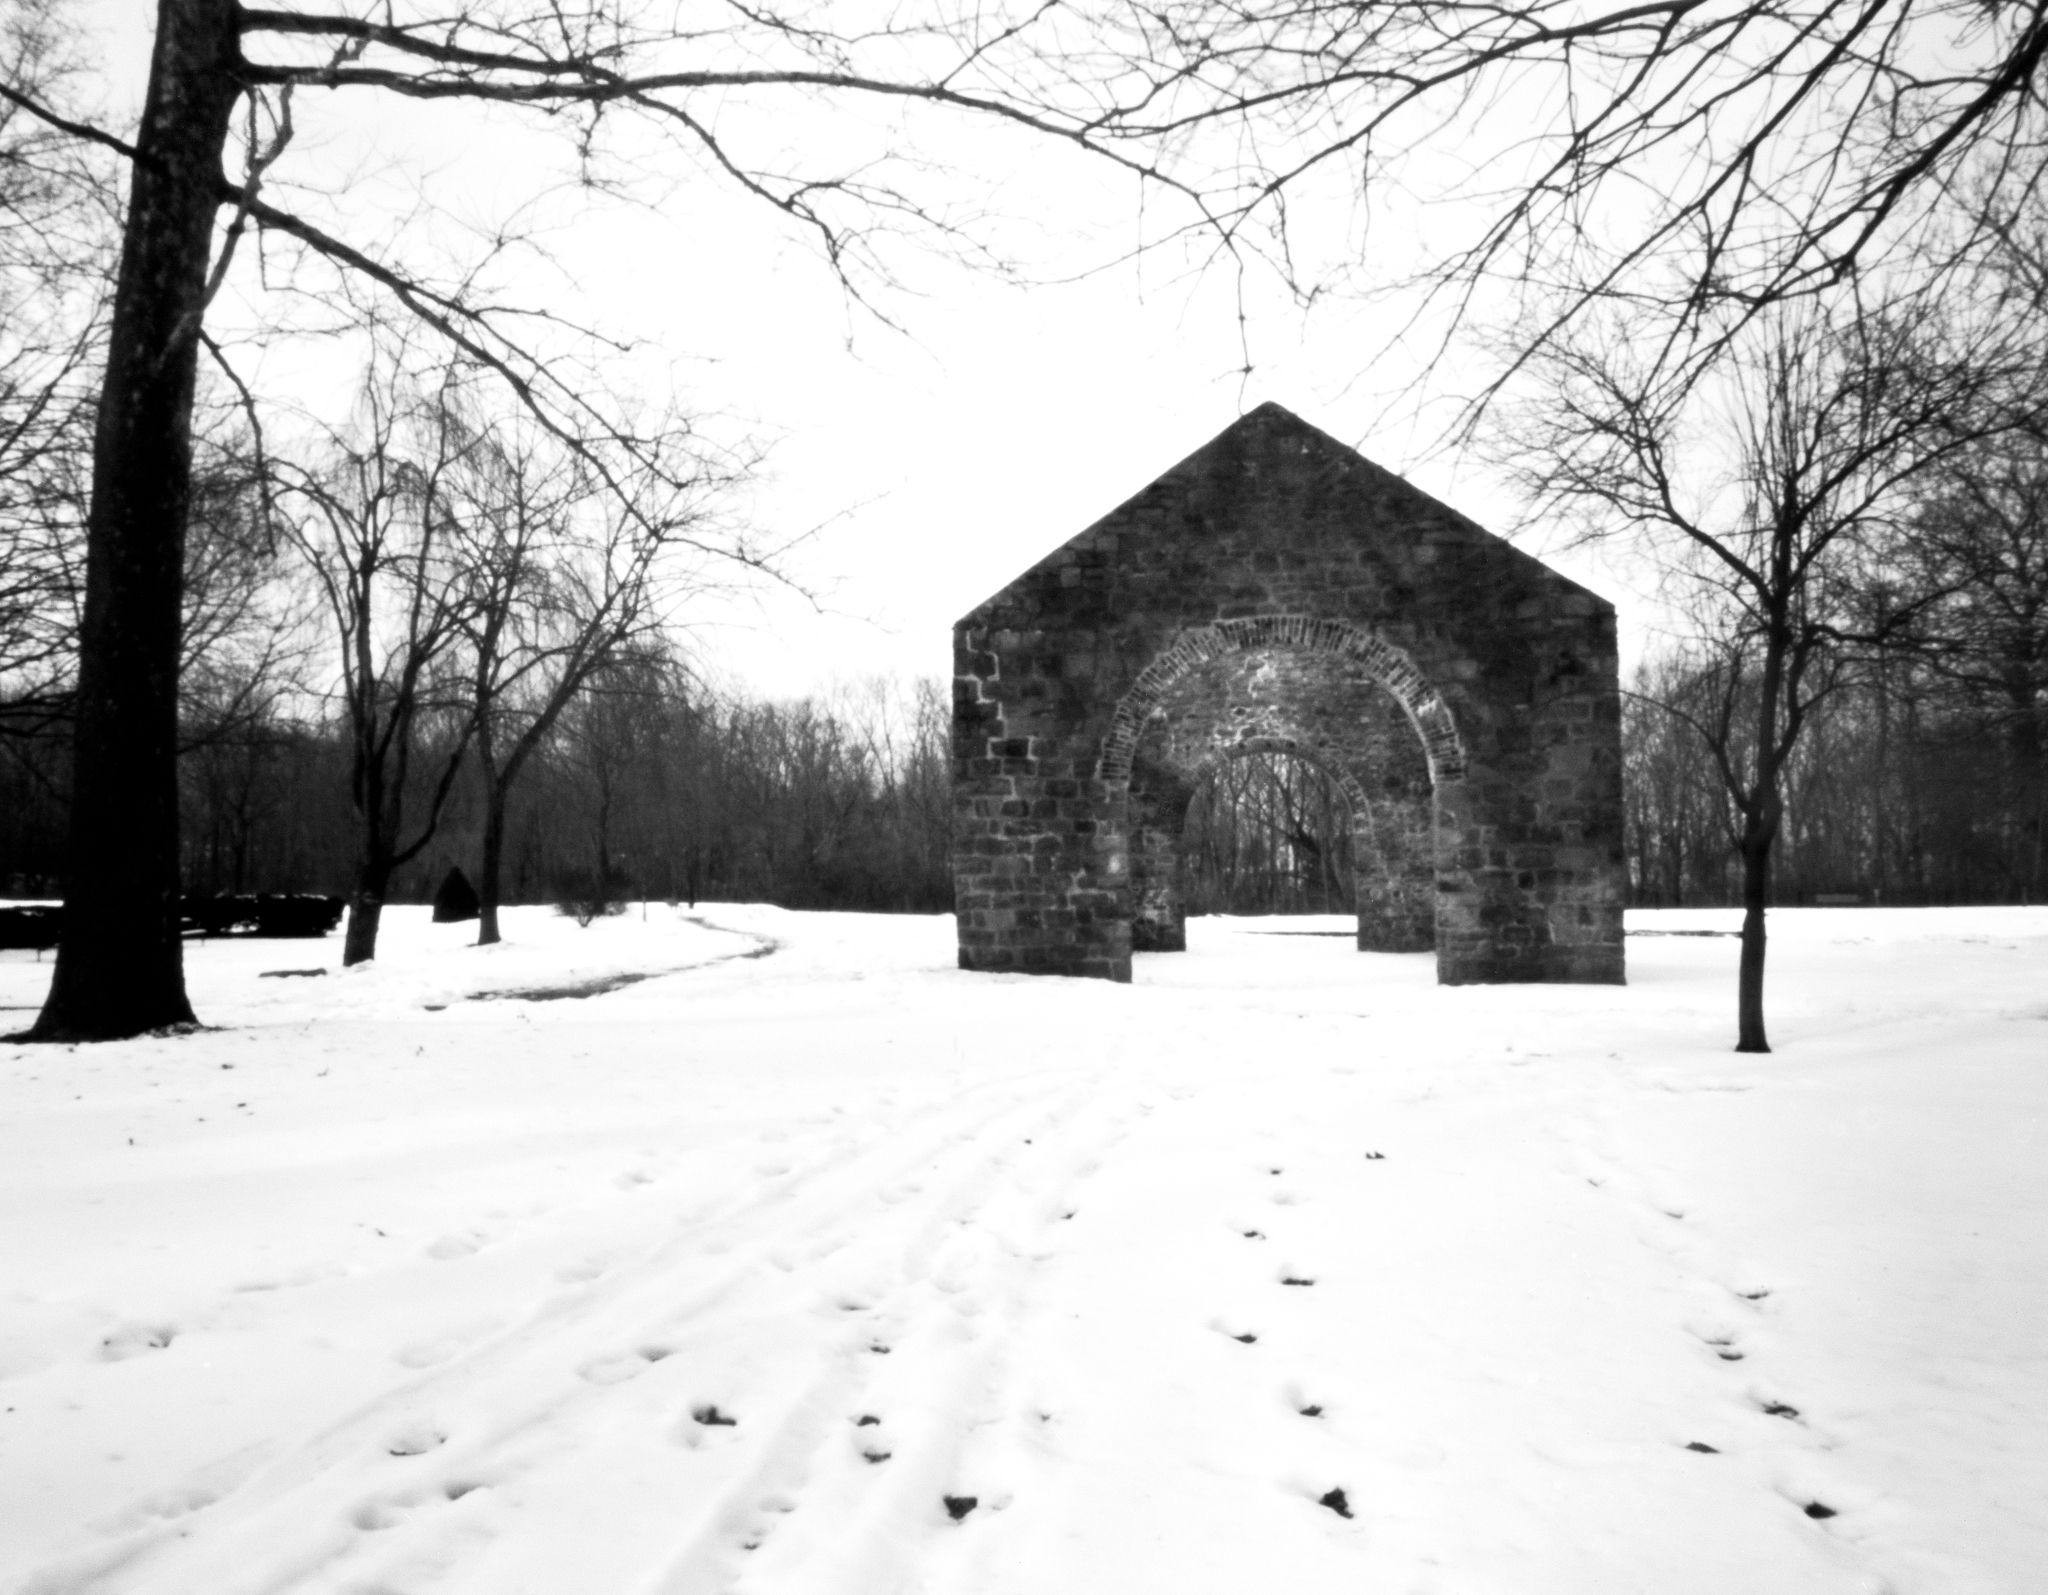 4x5_for_365_project_033_Lockridge_Furnace_pinhole.jpg